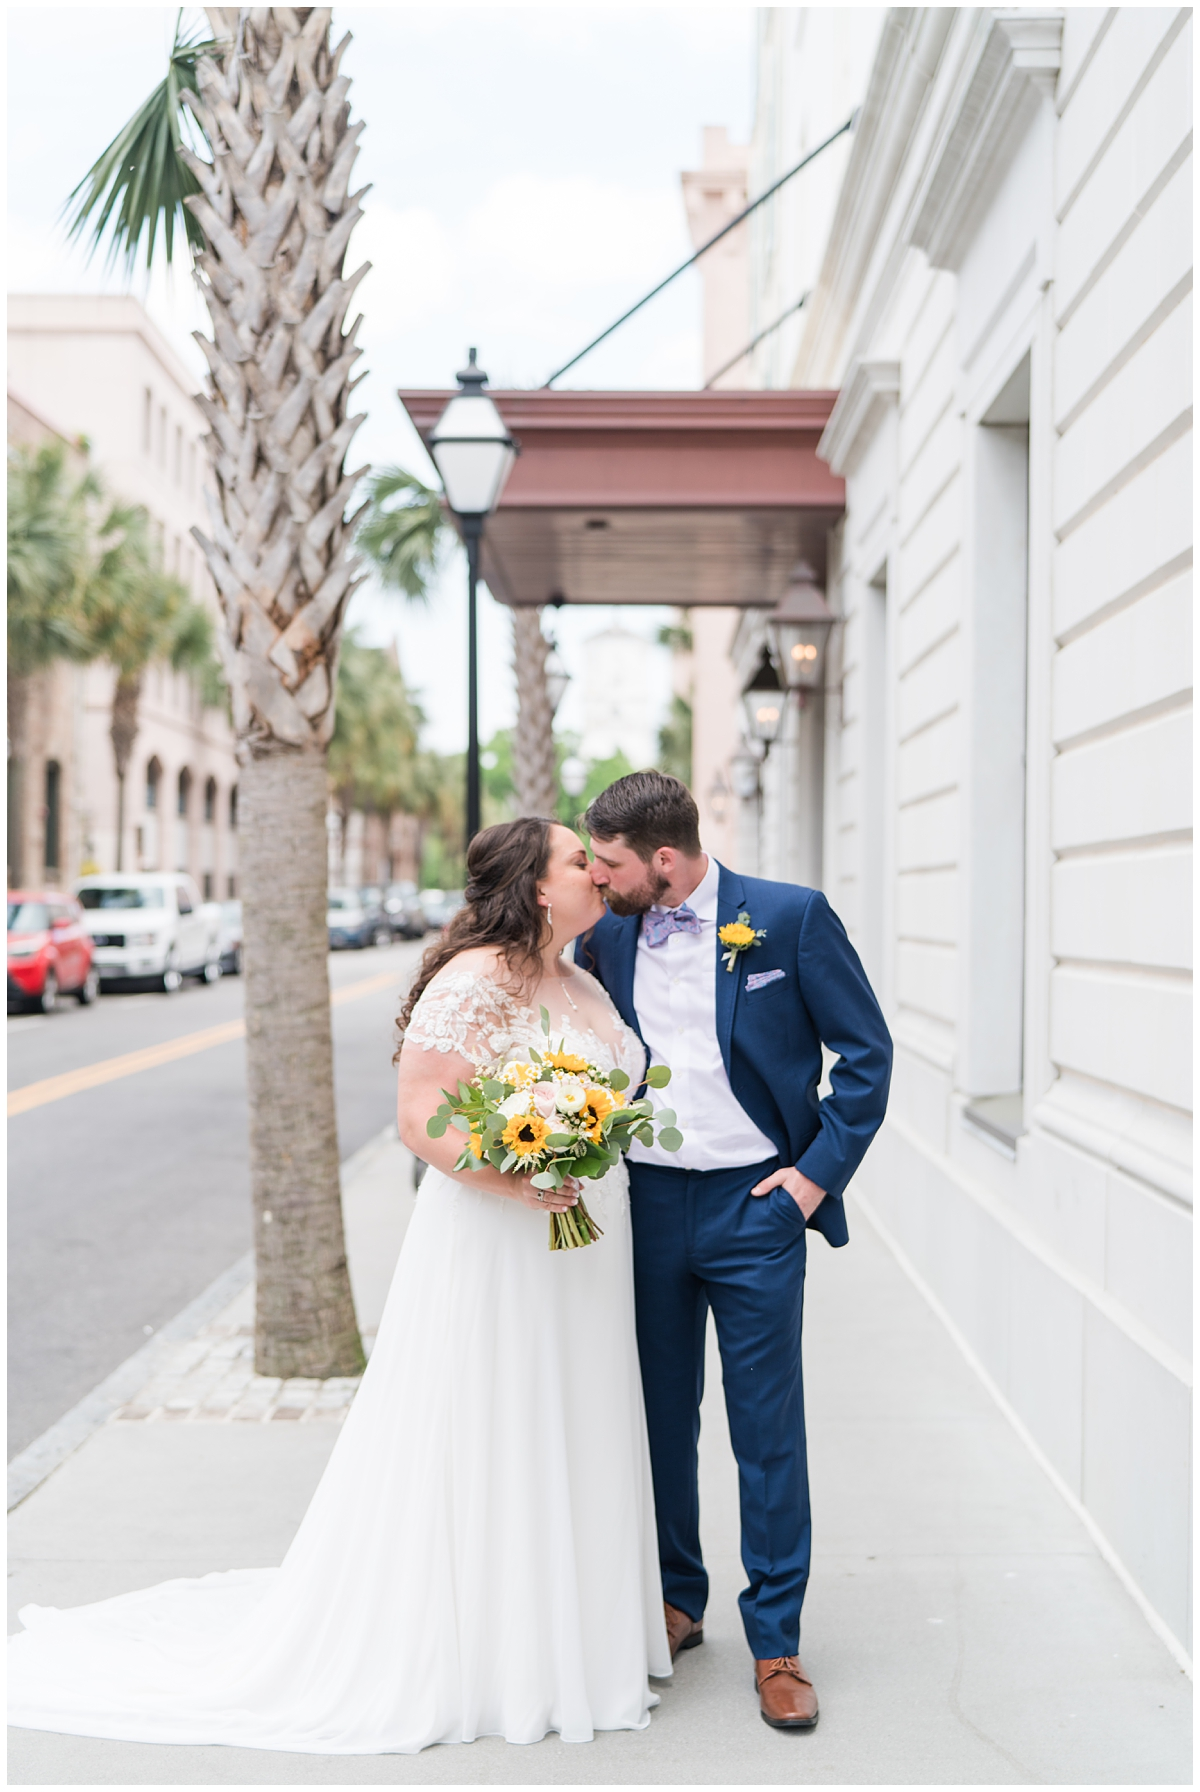 bride holding bouquet with sunflowers kisses groom in navy suit